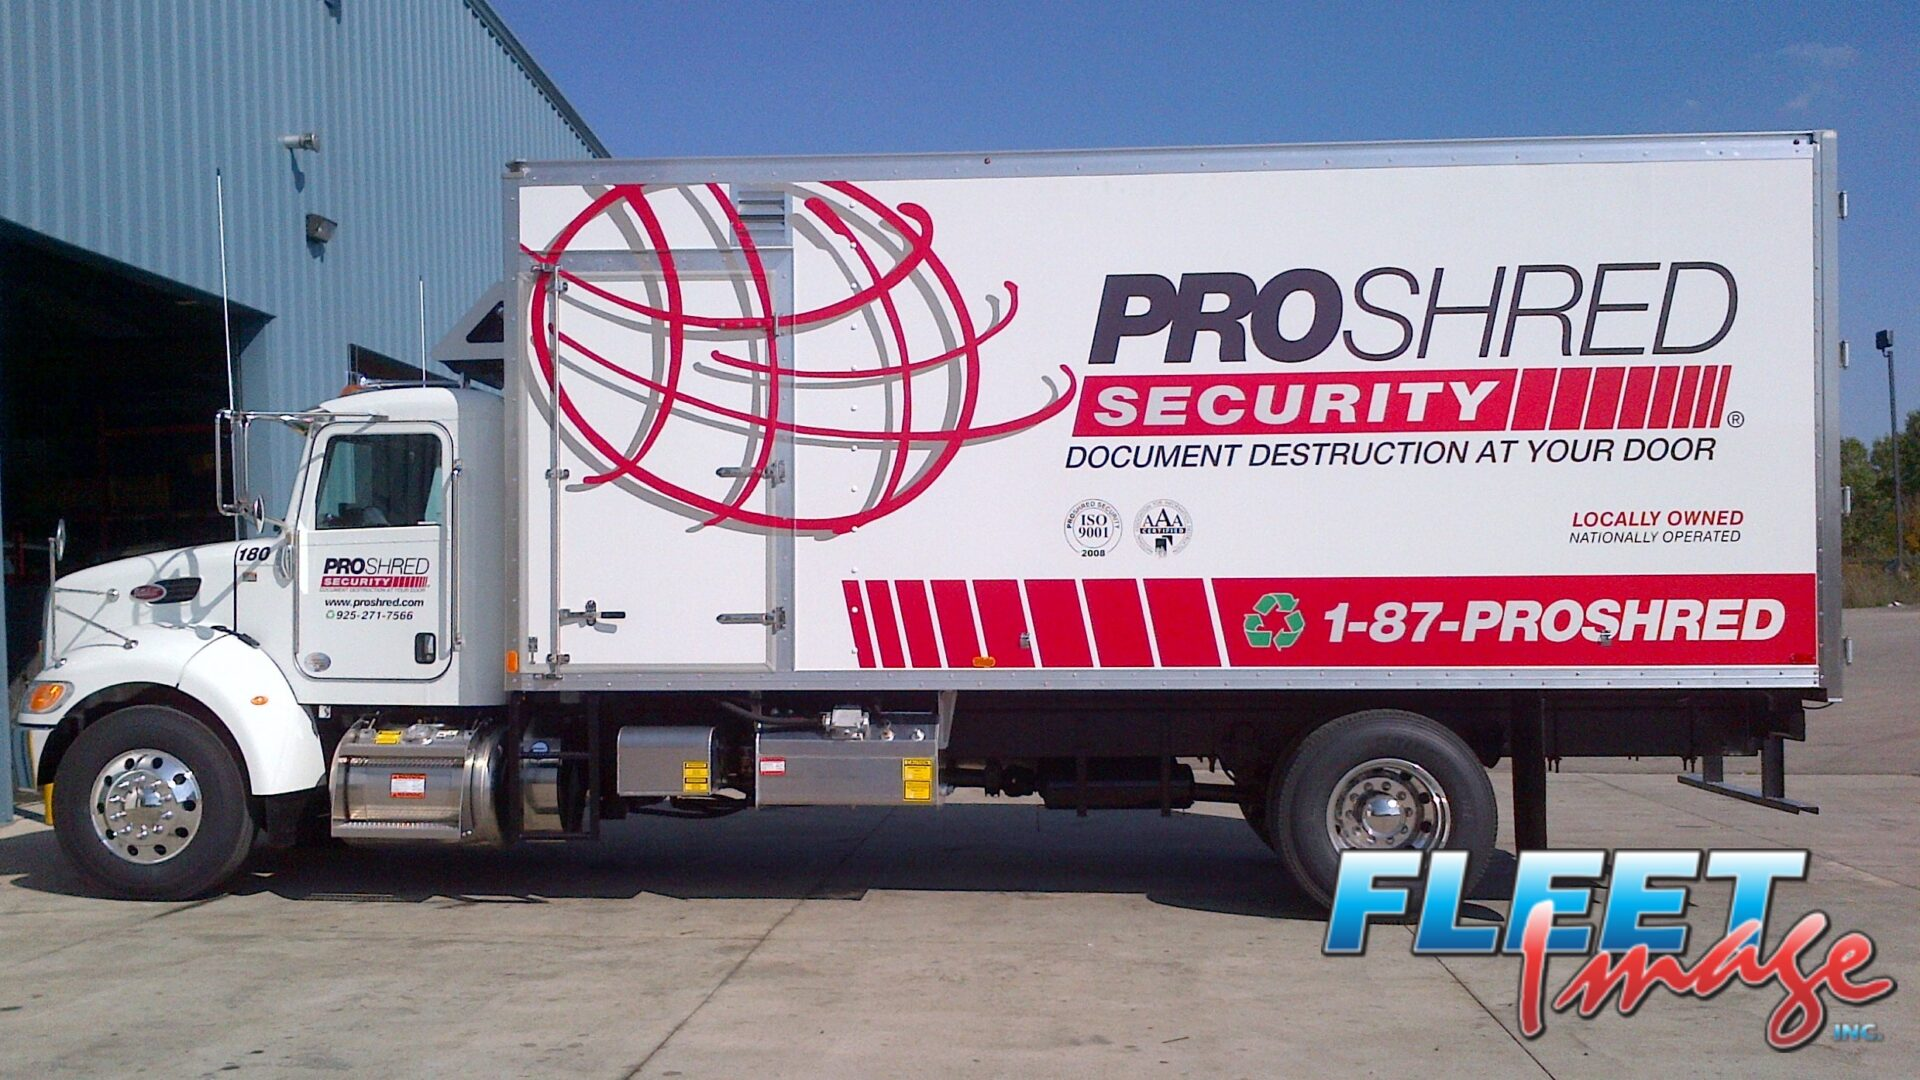 PROSHRED SECURITYdecal sticker on a truck